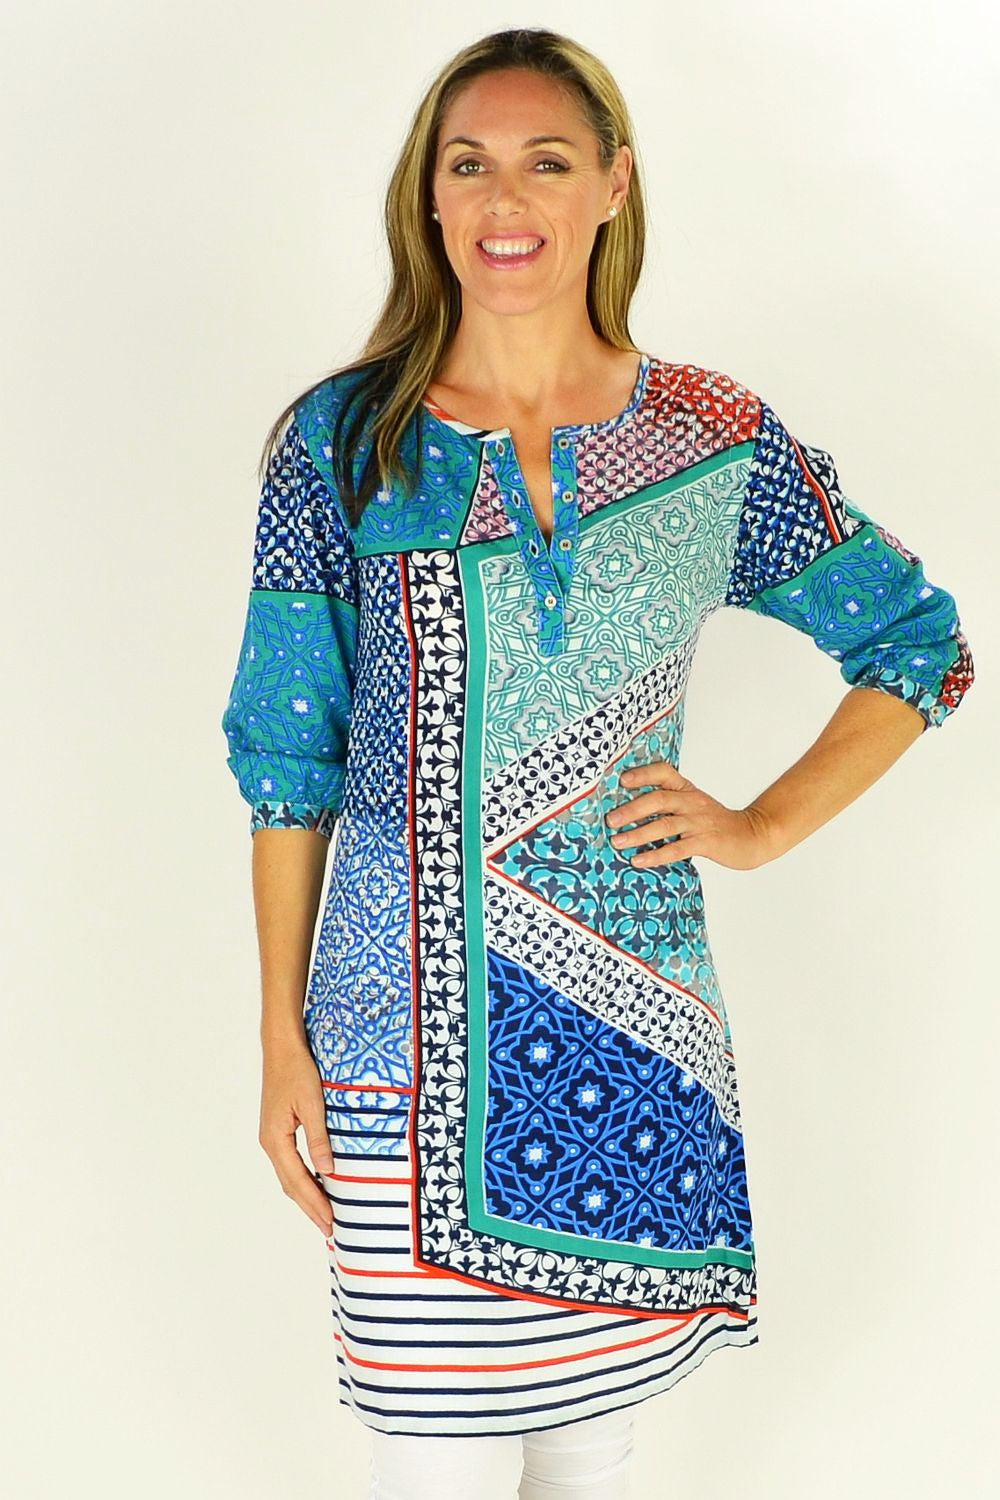 Picasso Tunic Dress by Orientique | I Love Tunics | Tunic Tops | Tunic Dresses | Women's Tops | Plus Size Australia | Mature Fashion